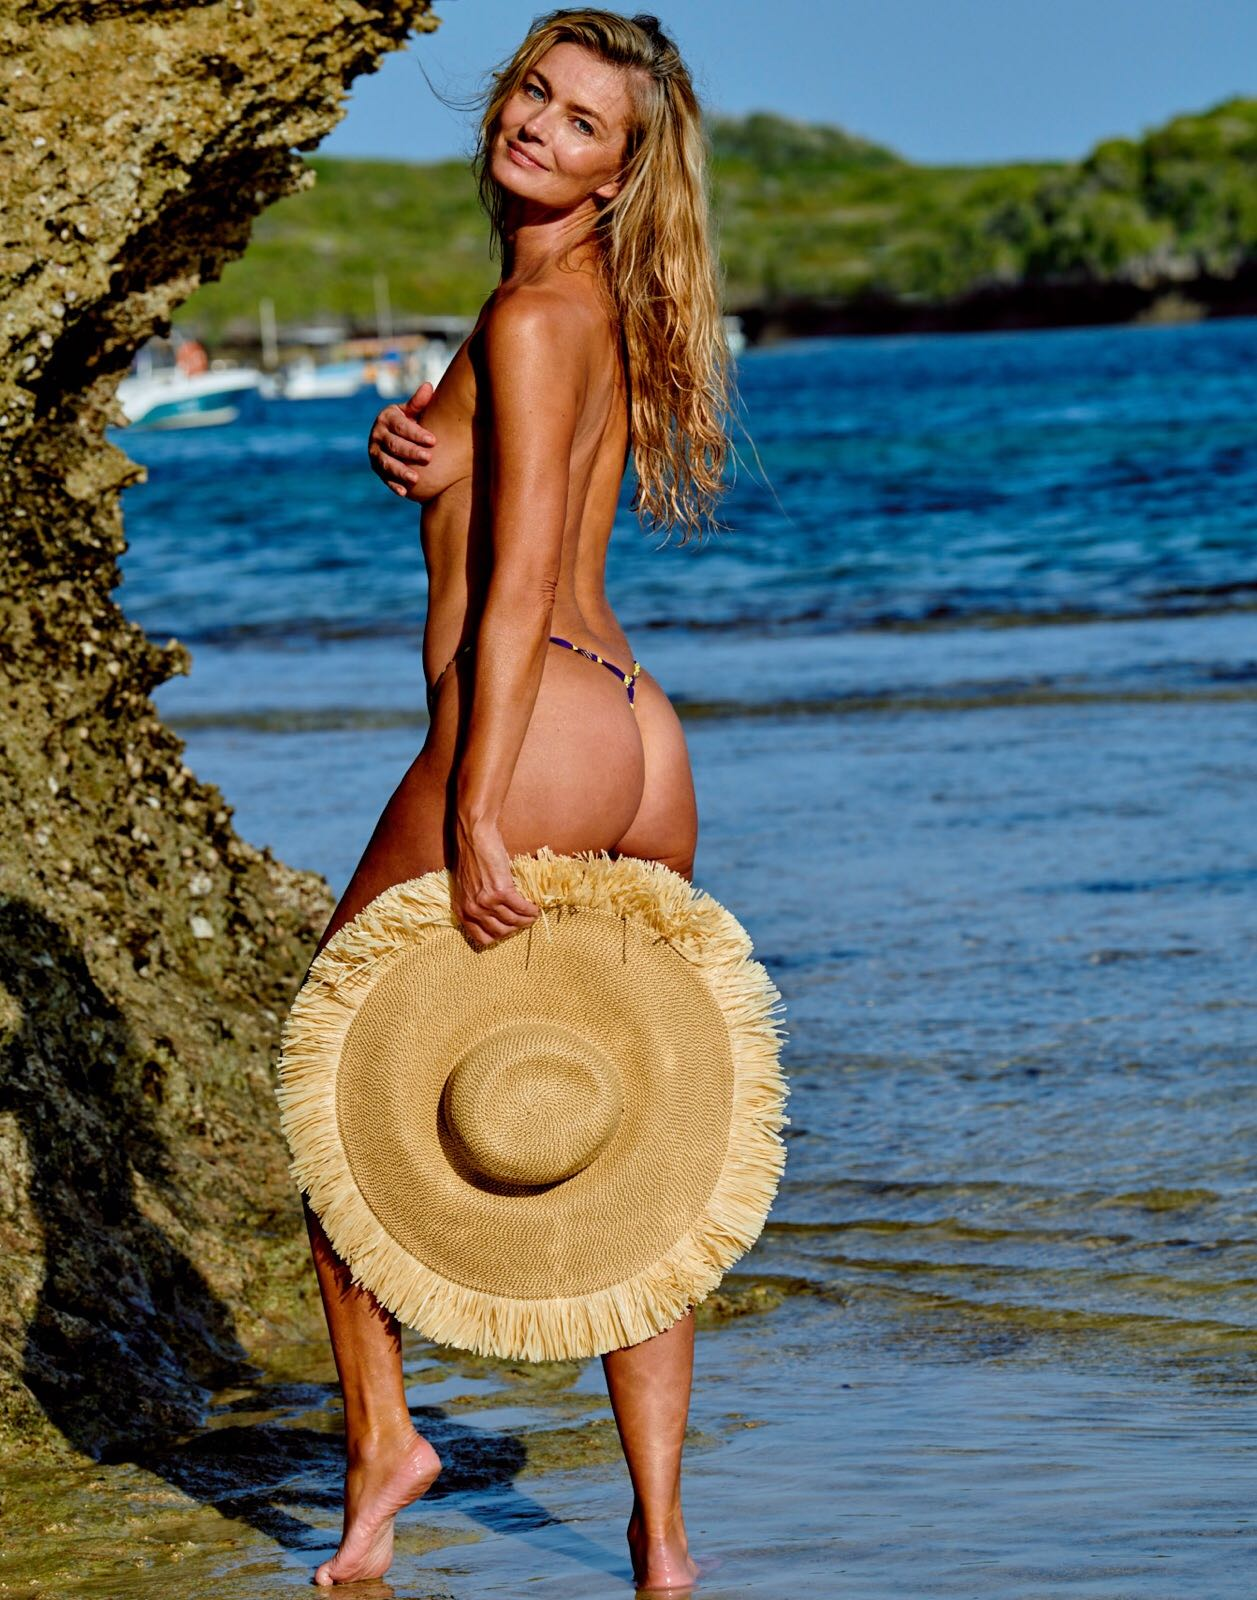 Sports Illustrated Swimsuit Topless photo 2